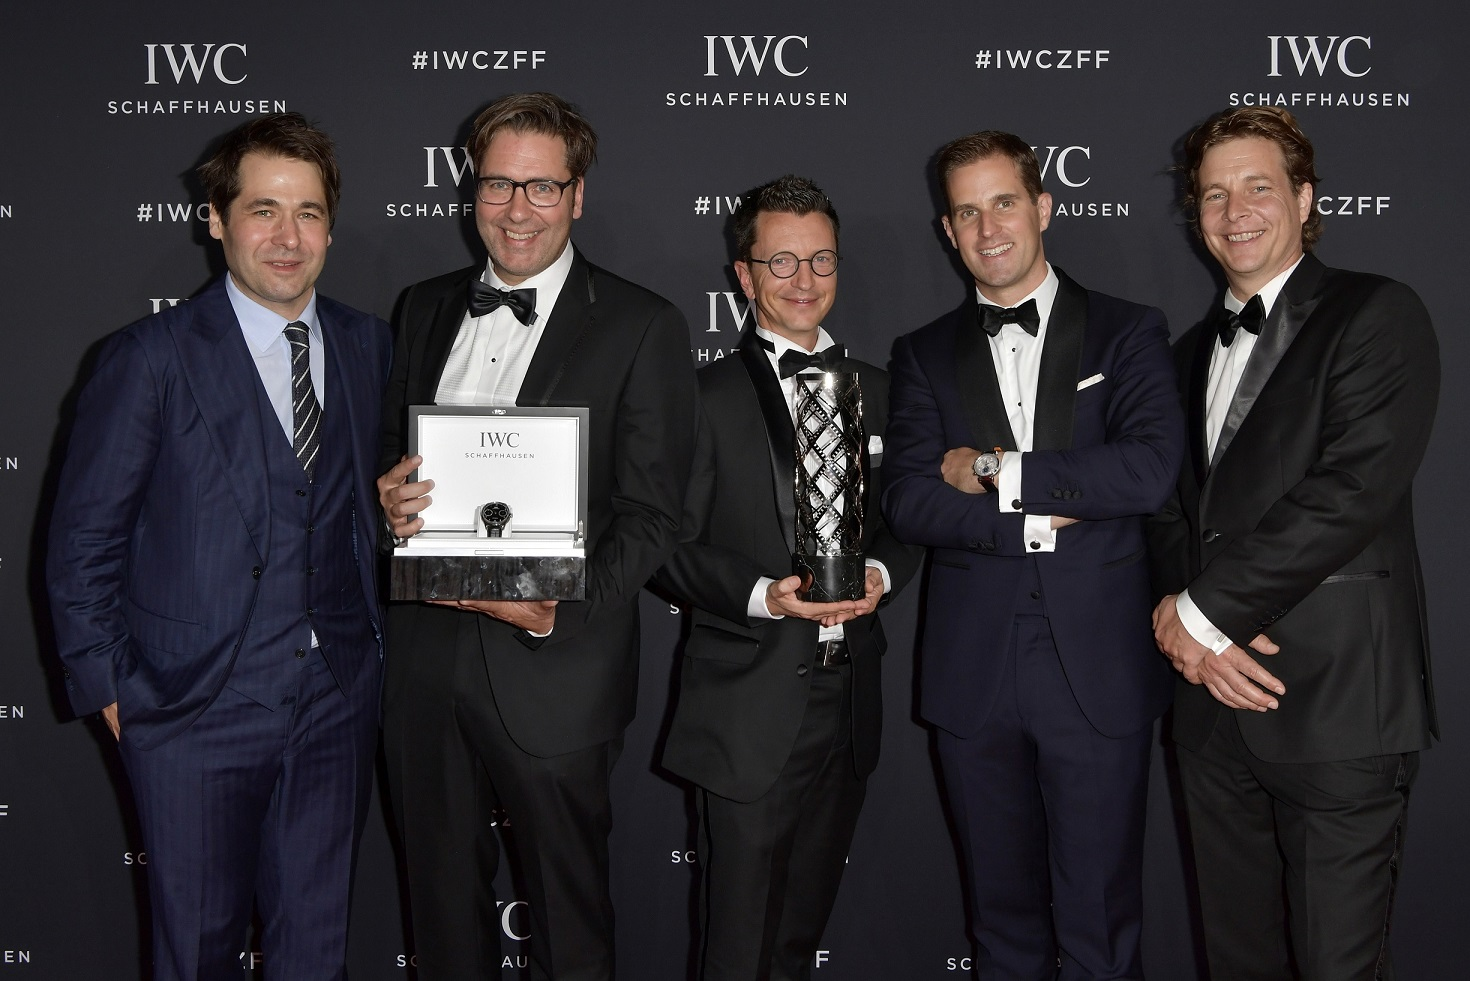 ZURICH, SWITZERLAND - SEPTEMBER 30: Zurich Film Festival director Karl Spoerri (L) and CEO IWC Schaffhausen Christoph Grainger-Herr (2nd R) pose with the winners director Niklaus Hilber (2nd L), producer Valentin Greutert (C) and co-producer Philip Delaquis at the IWC 'For the Love of Cinema' Gala Dinner at AURA Zurich on 30 September, 2017 in Zurich, Switzerland. During the event, actor James Marsden presented the third 'Filmmaker Award', a sponsorship worth CHF 100,000. The award was set up by the Association for the Promotion of Film in Switzerland ('Verein zur Filmförderung in der Schweiz').  (Photo by Harold Cunningham/Getty Images for IWC)